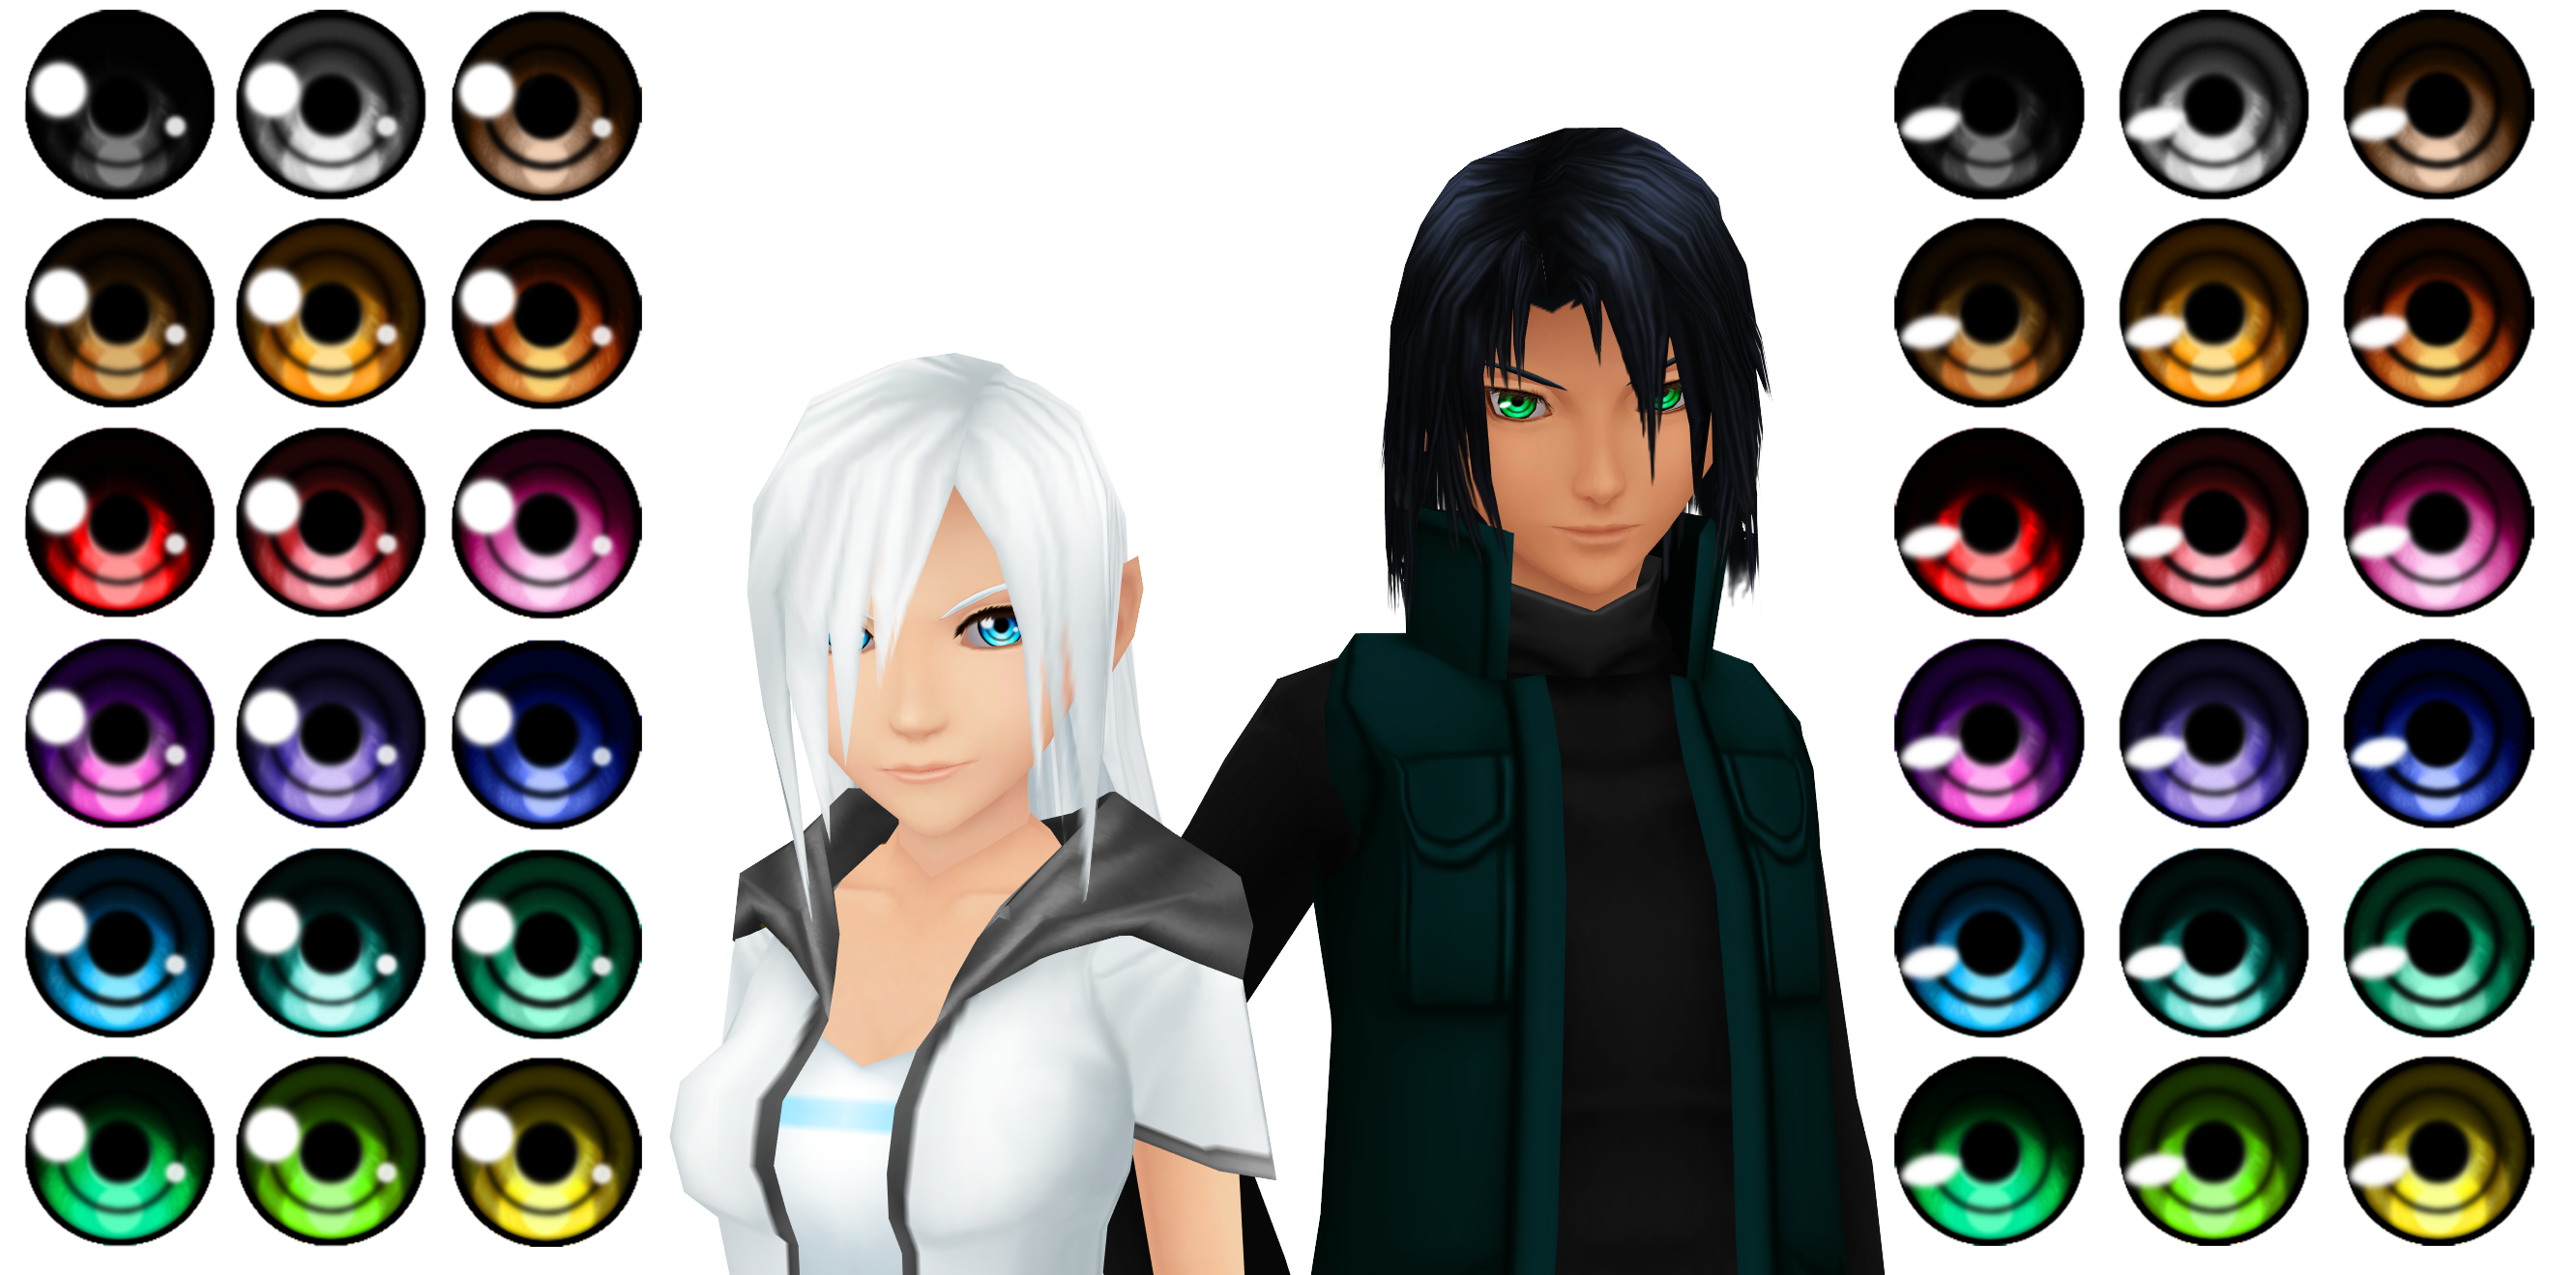 Kingdom Hearts GIMP Patterns DOWNLOAD by Reseliee on DeviantArt